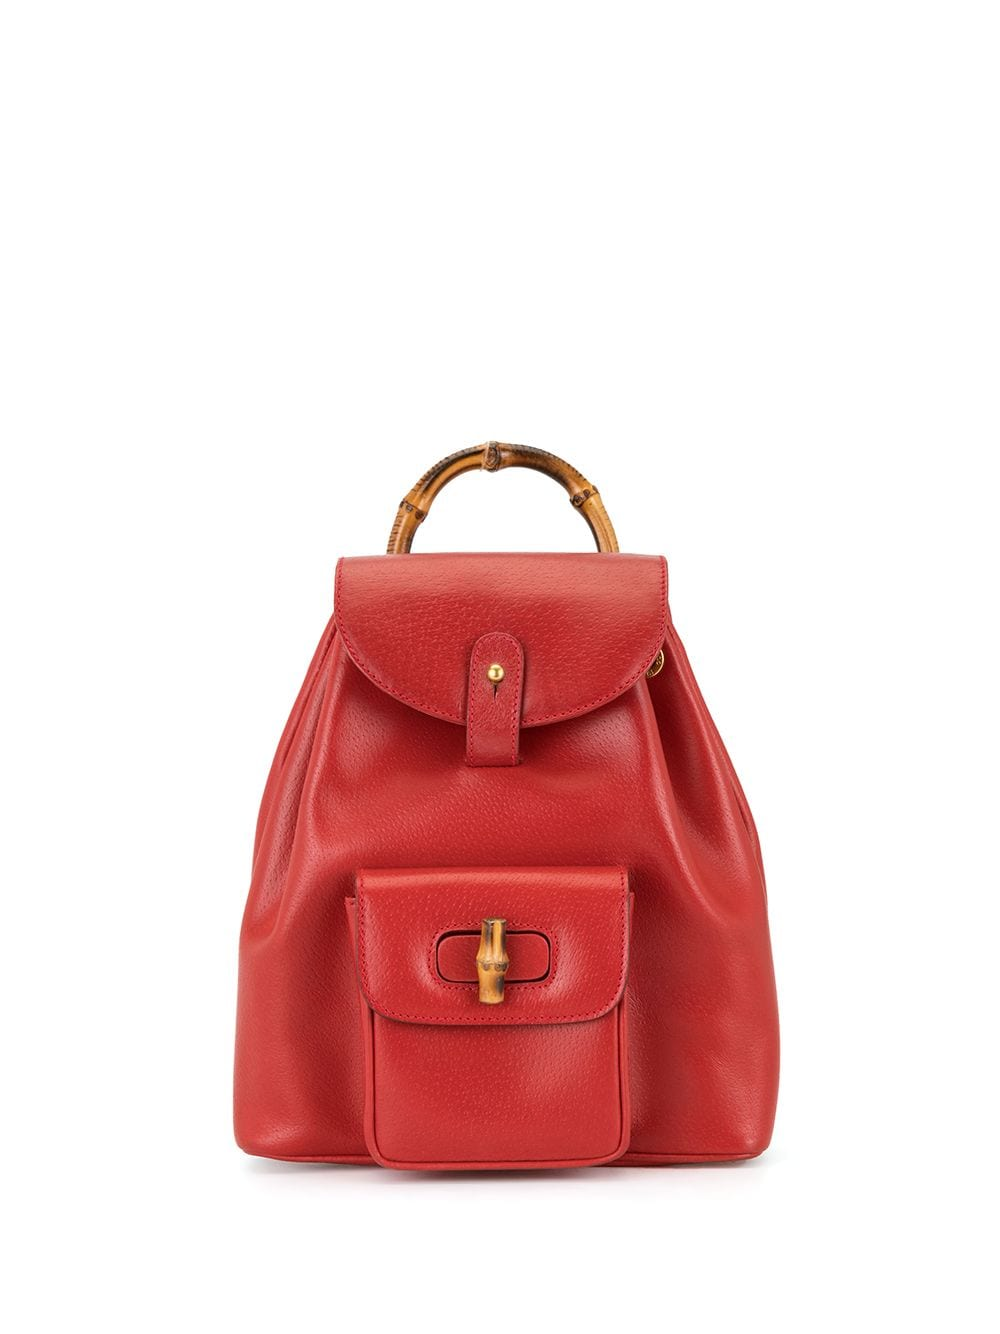 Gucci Pre-Owned Rucksack mit Bambusdetail - Rot